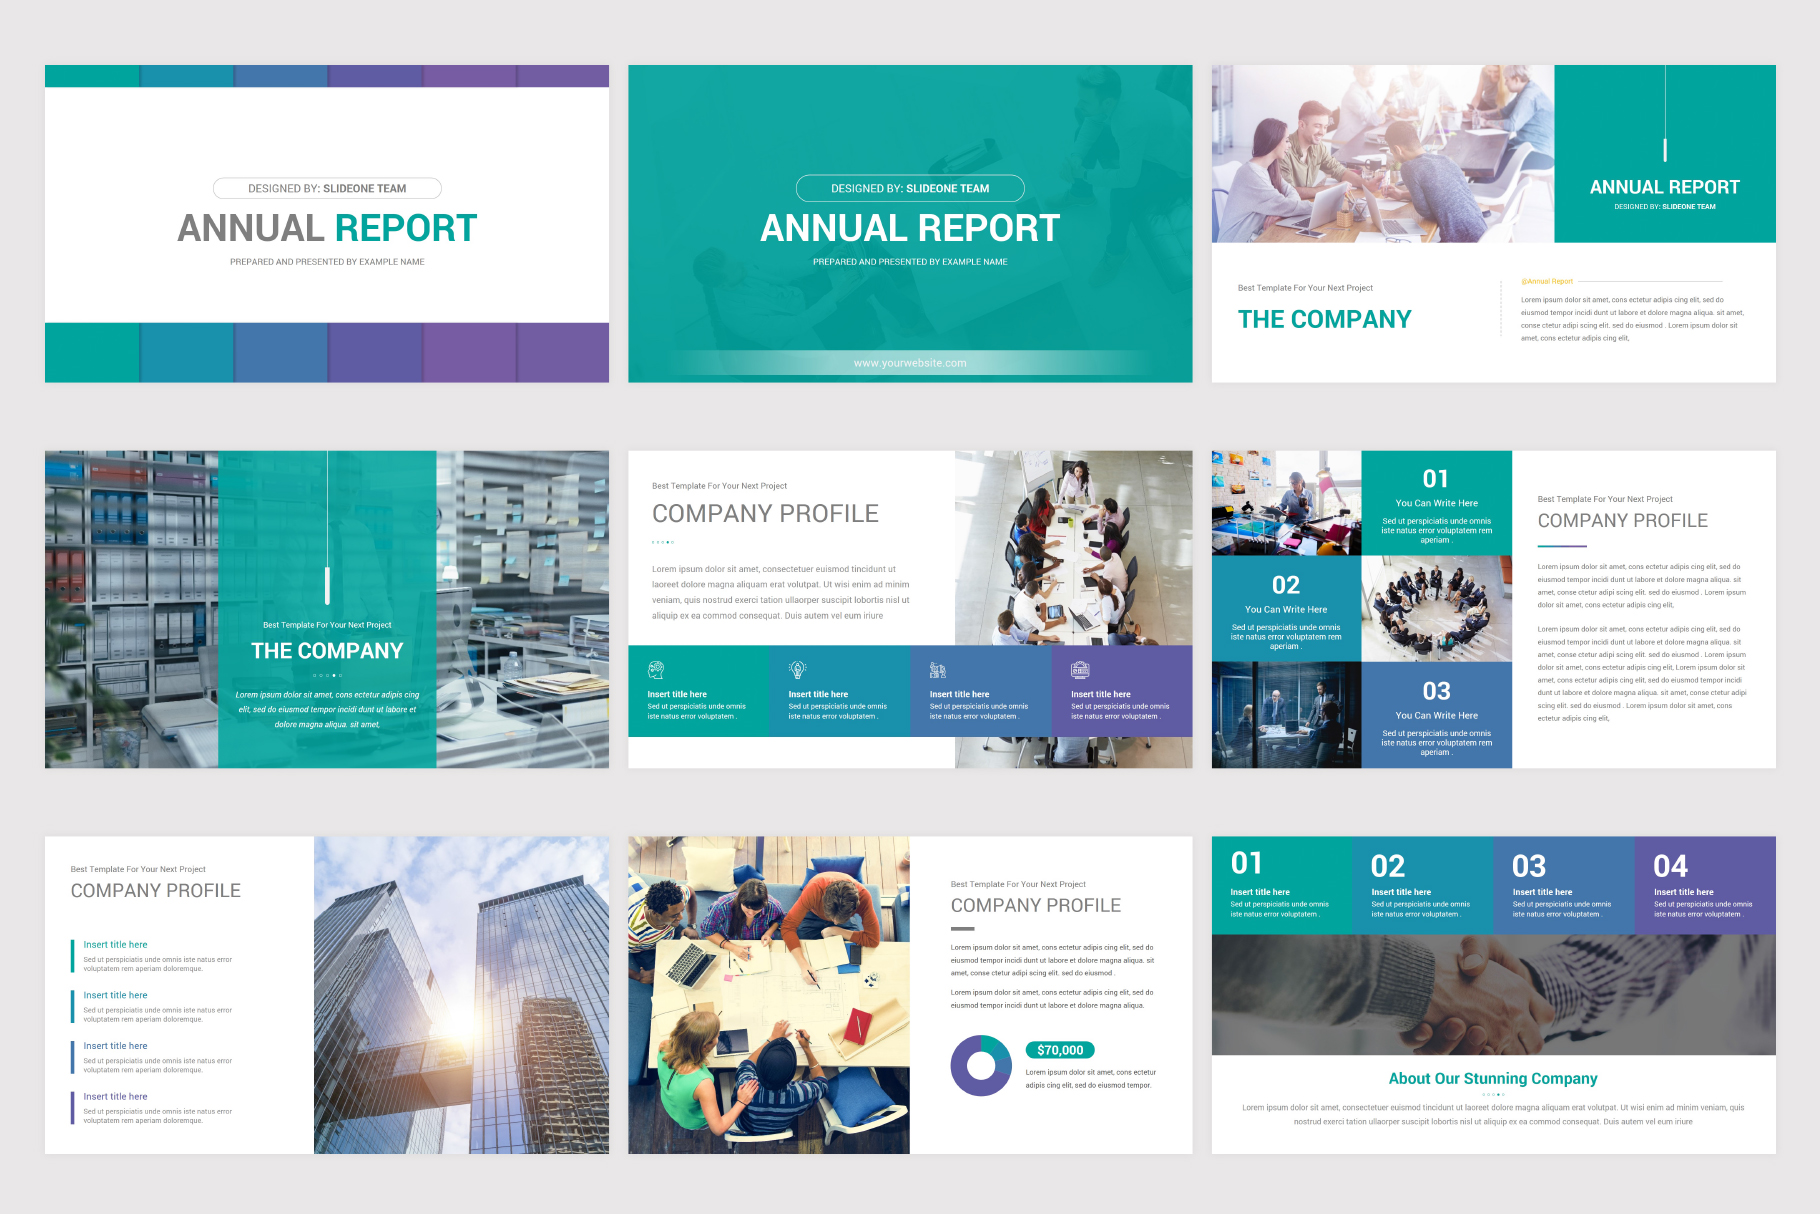 Annual Report Keynote Template example image 4